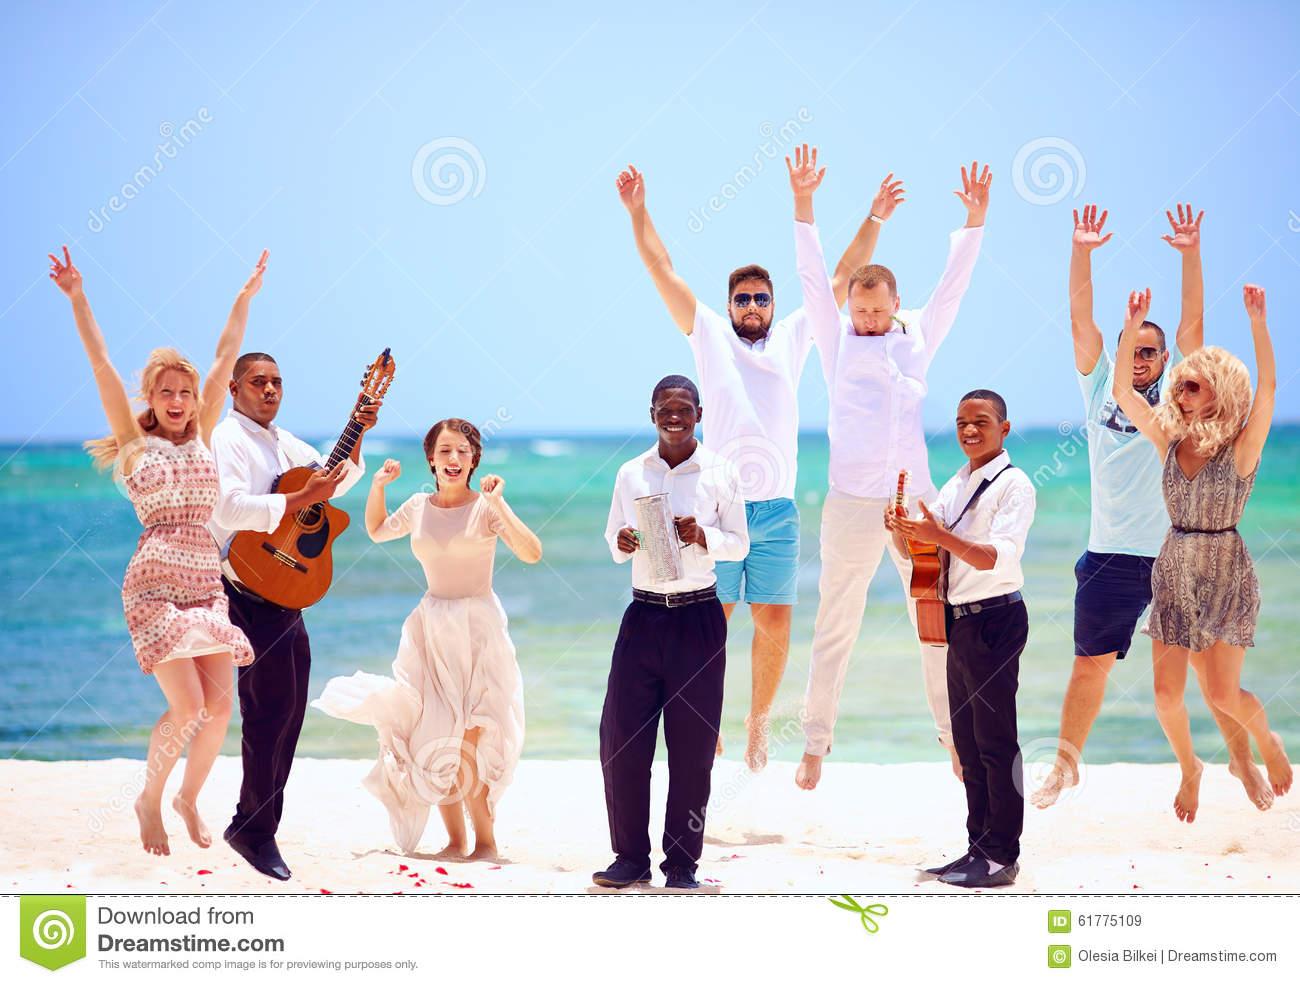 Group of happy people on celebration the exotic wedding with musicians, on tropical beach